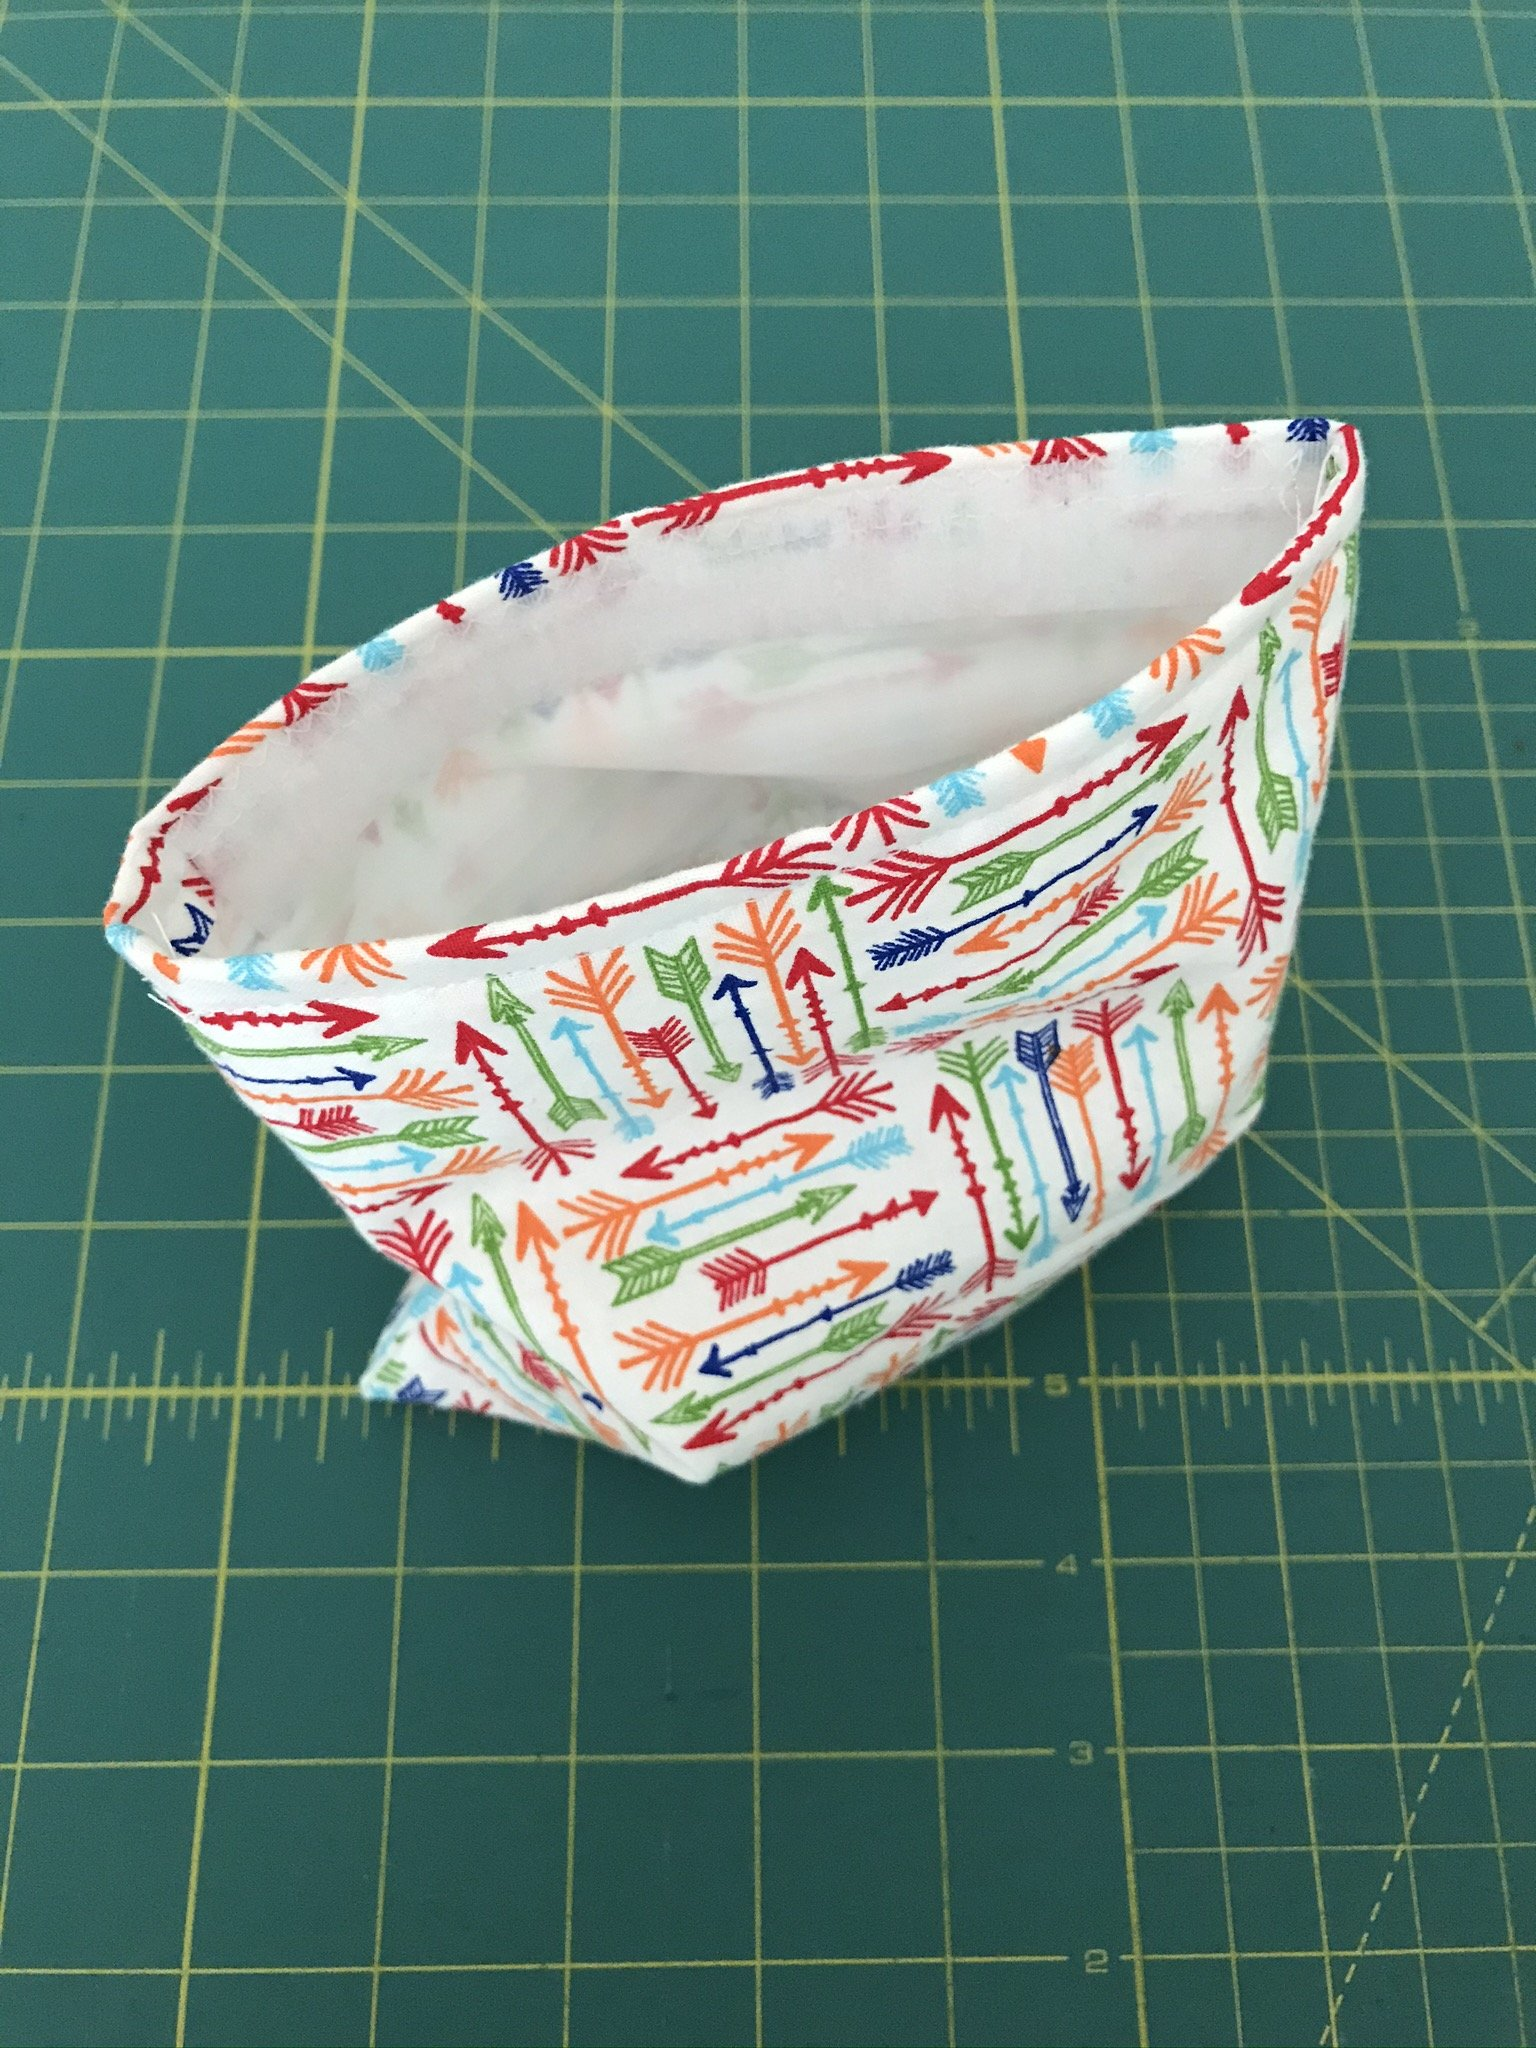 How To Sew A Reusable Snack Bag And Reduce Plastic Waste